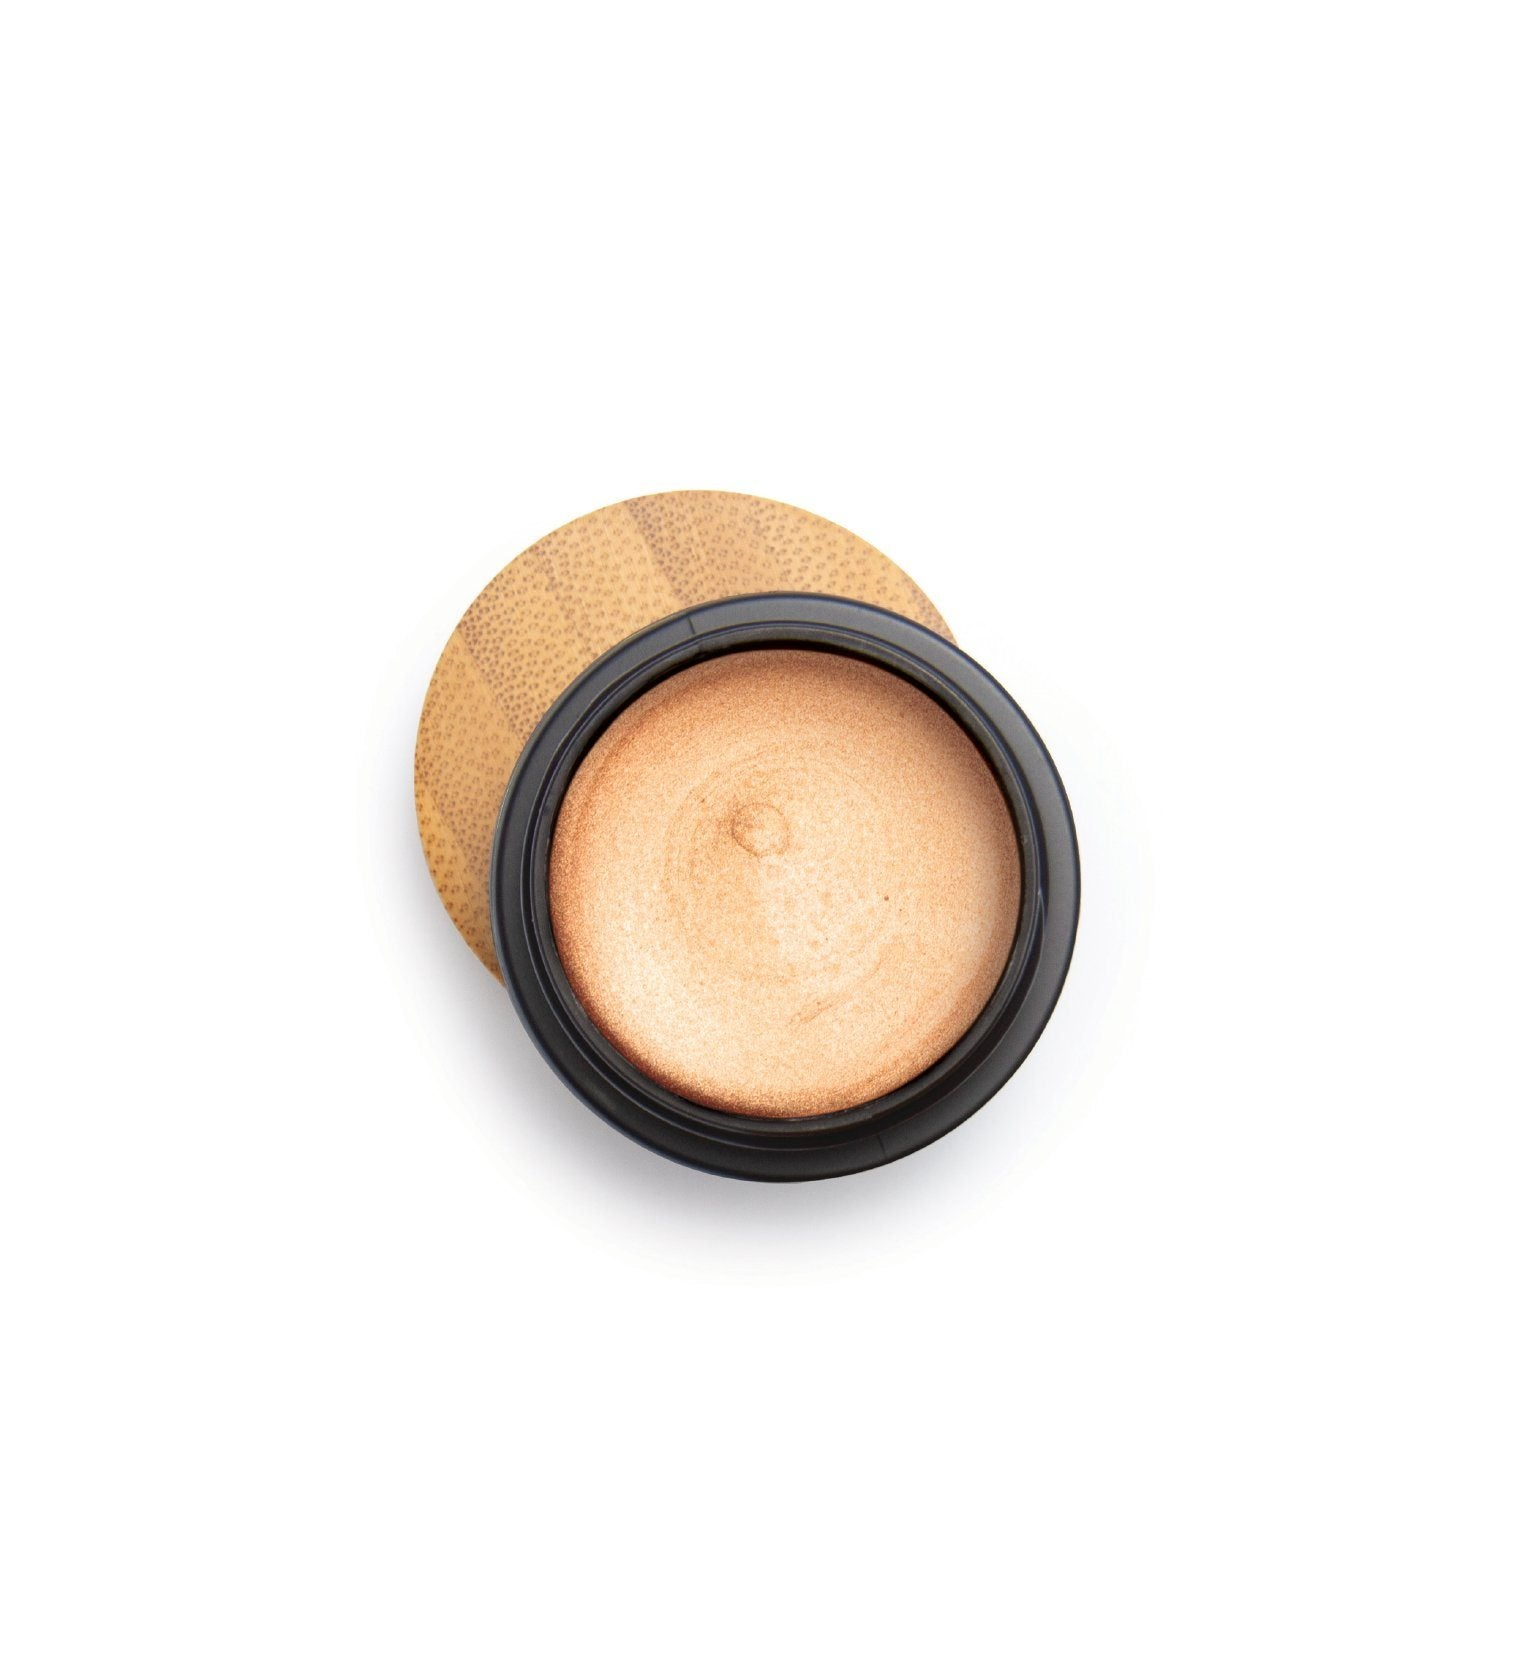 The Organic Skin Co. The Eyes Have It (pot) Cosmetics - Eye The Organic Skin Co. HIGHLIGHTS